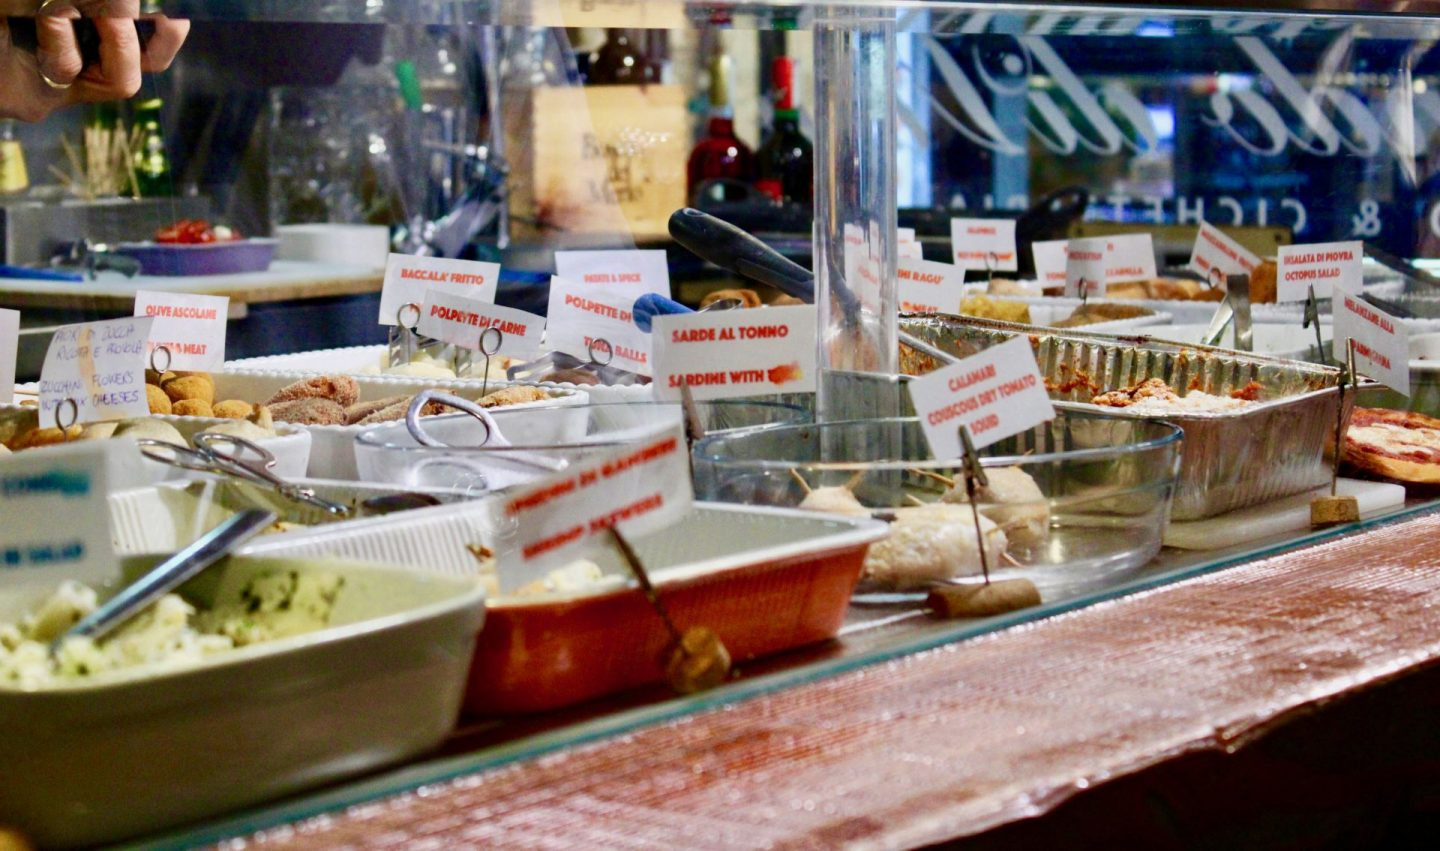 A display of cicchetti in Venice